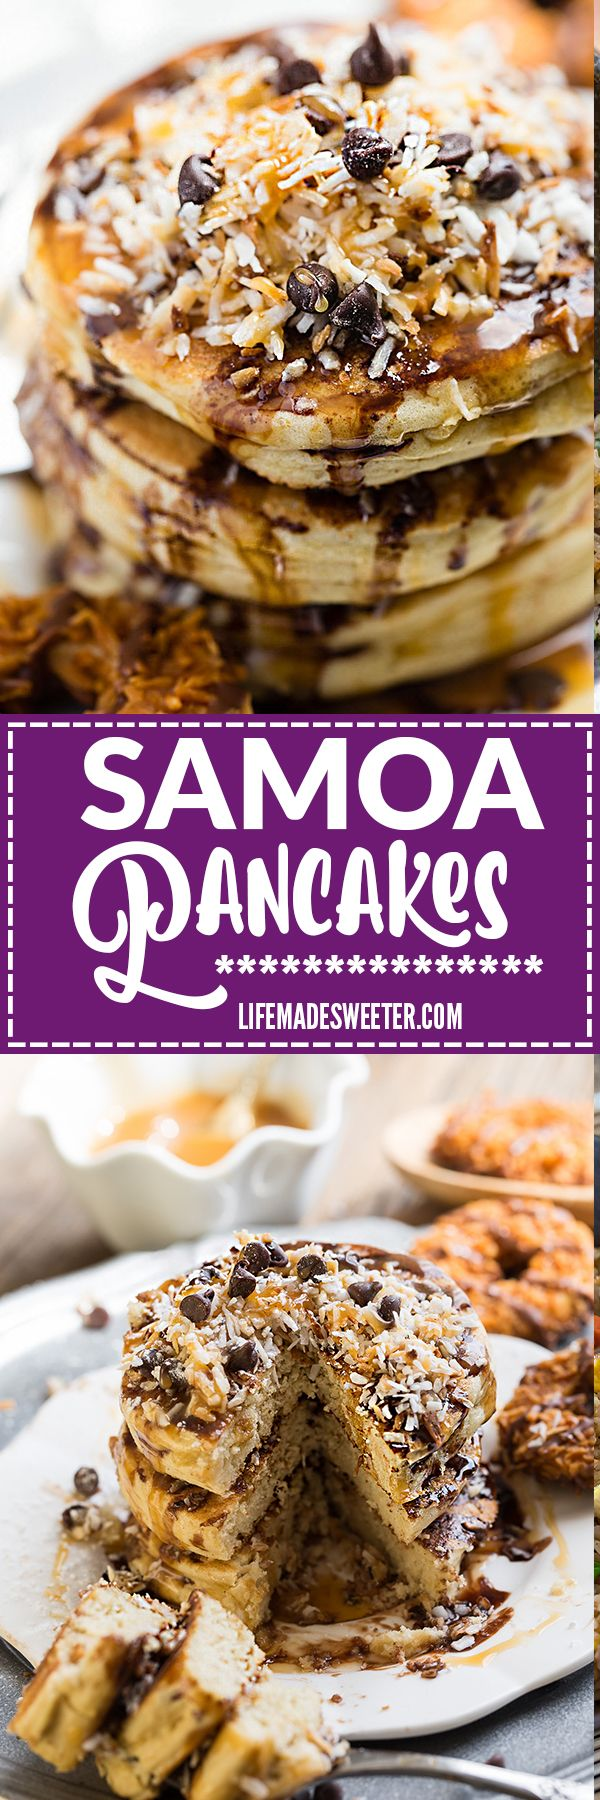 200 best pancake waffle recipes images on pinterest recipes these samoa pancakes are the perfect way to enjoy the popular girl scout cookie all year round best of all these soft and fluffy pancakes are so easy to ccuart Choice Image